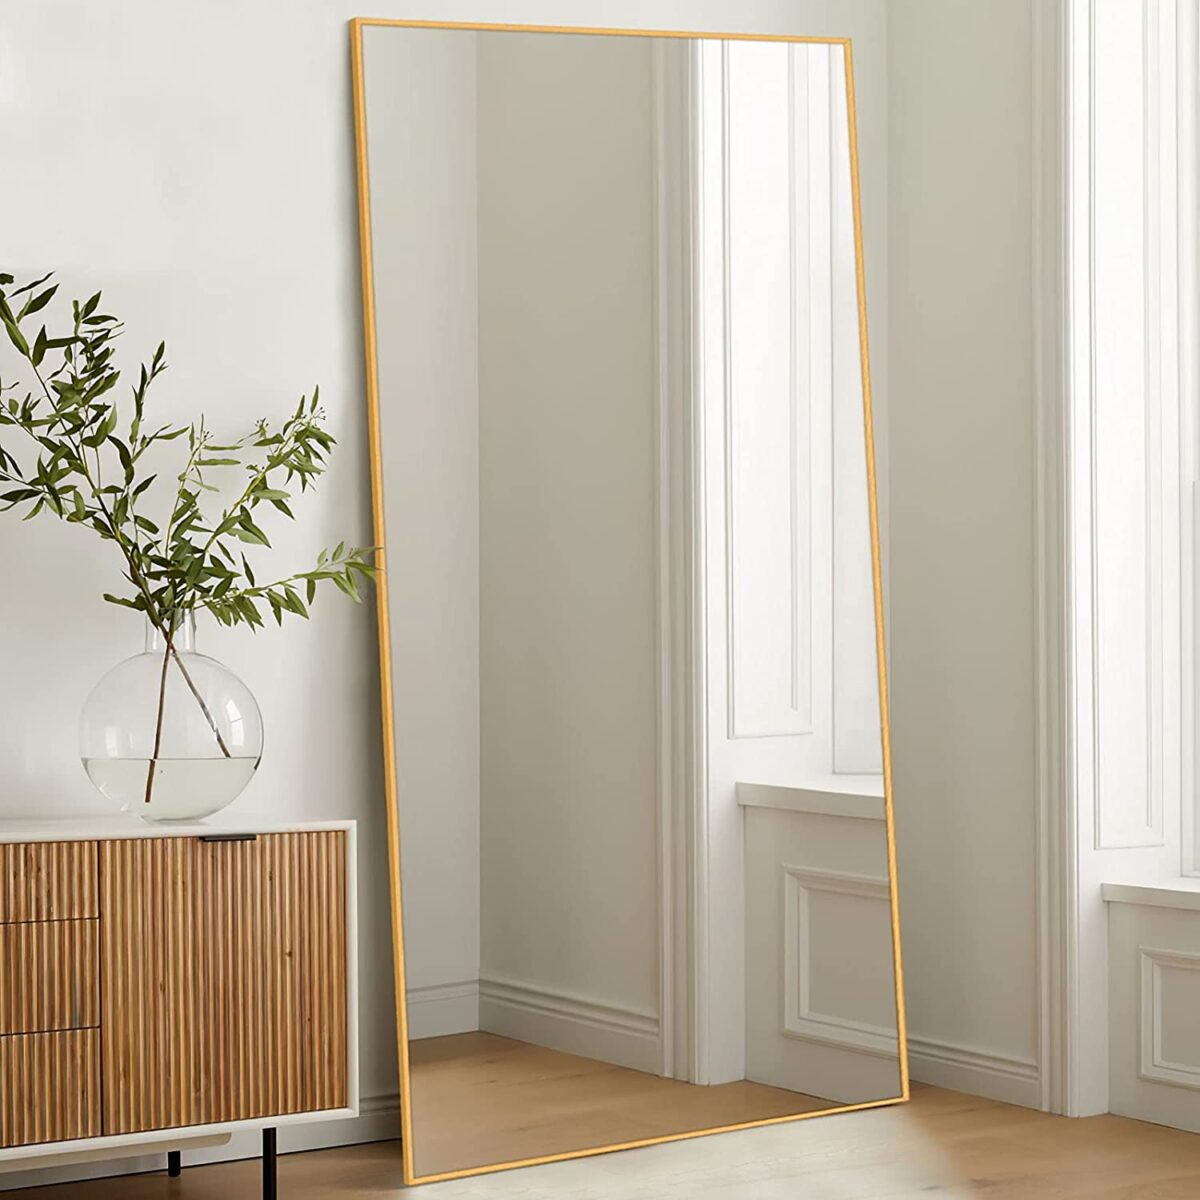 A roundup of the best oversized floor mirrors on the market today!